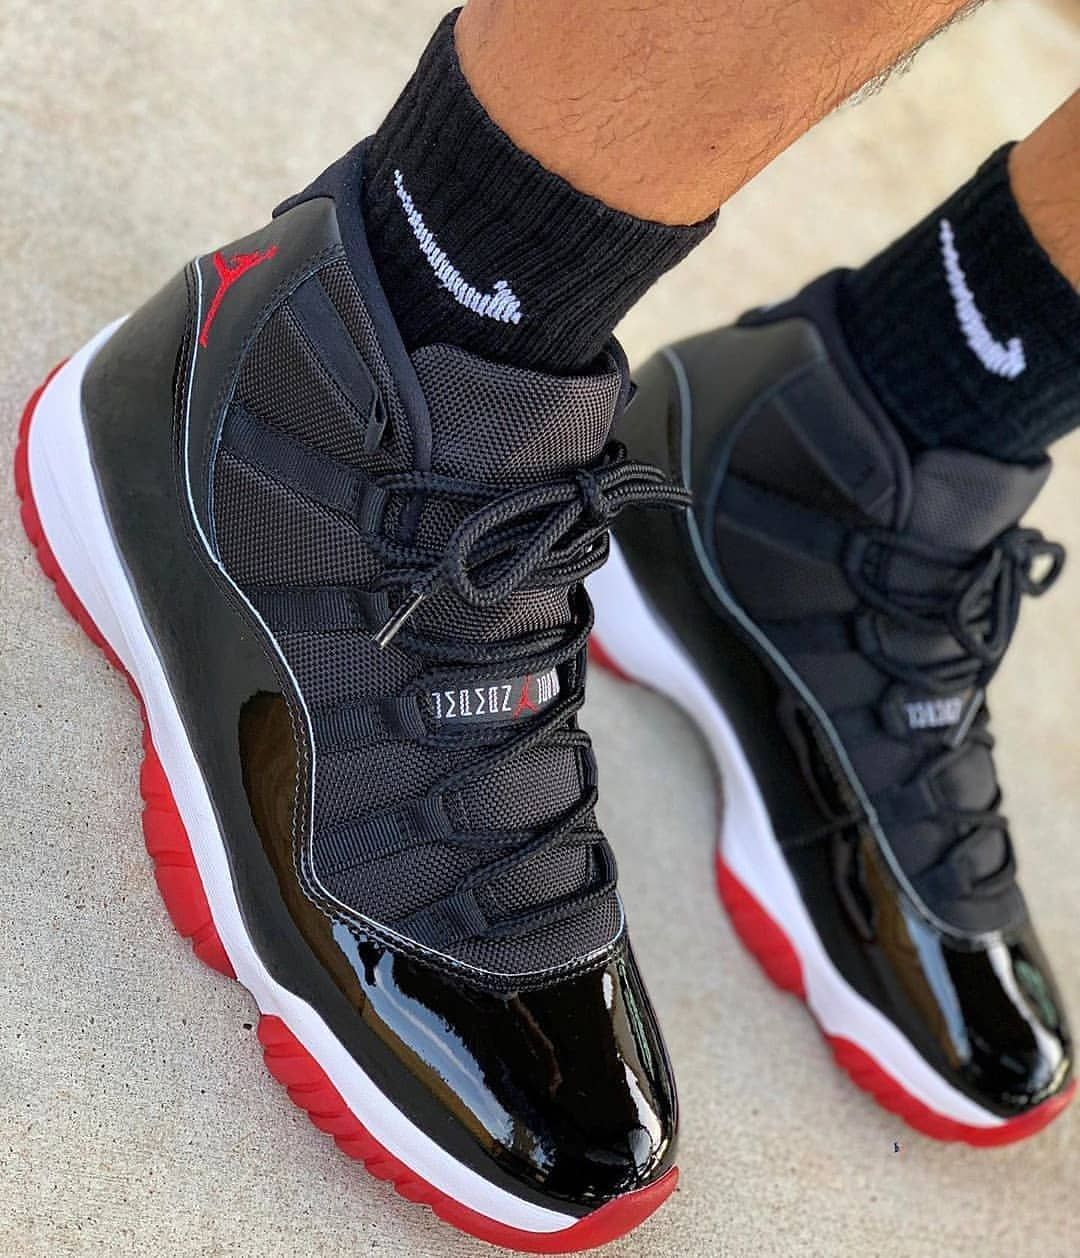 Pin by A Clarkson on shoes I want! | Air jordans, Jordan 11 bred ...